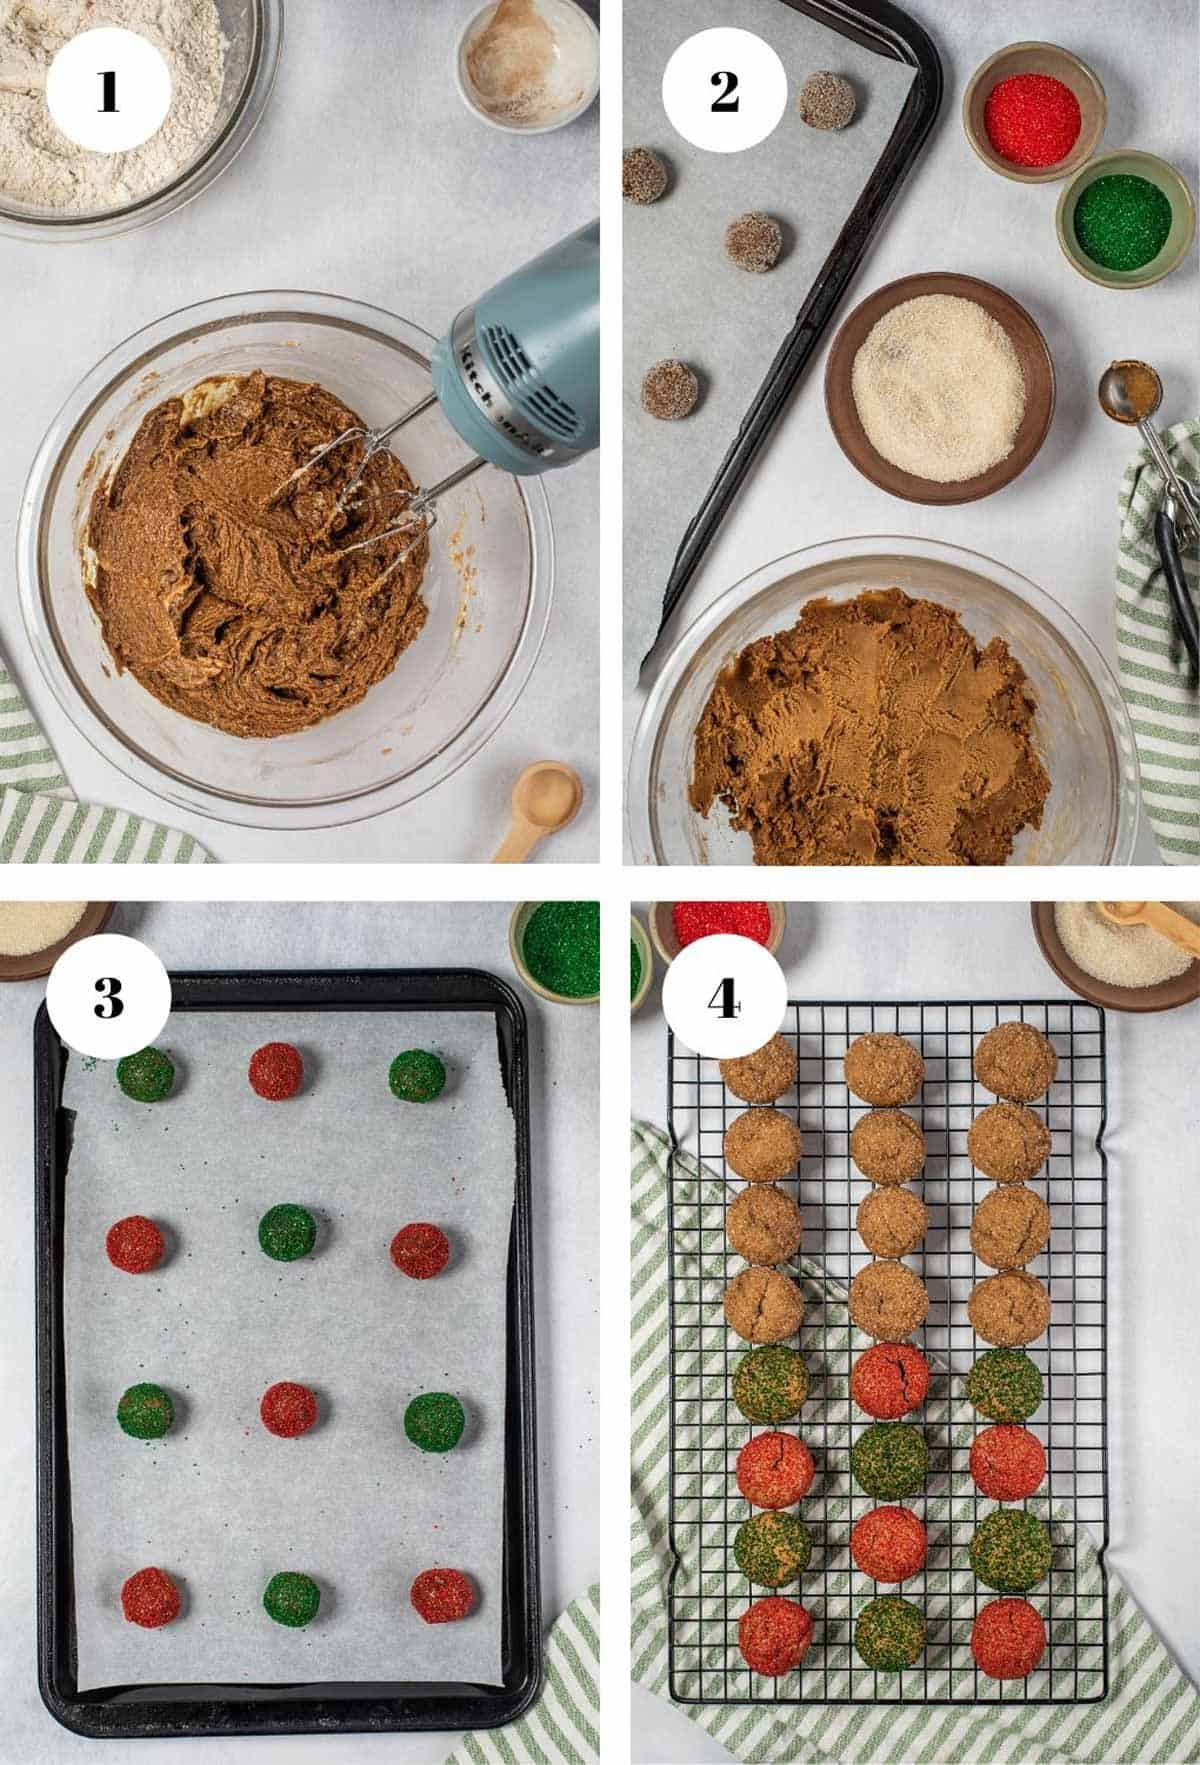 Mixing cookie dough and baking a batch of red, green, and brown cookies.